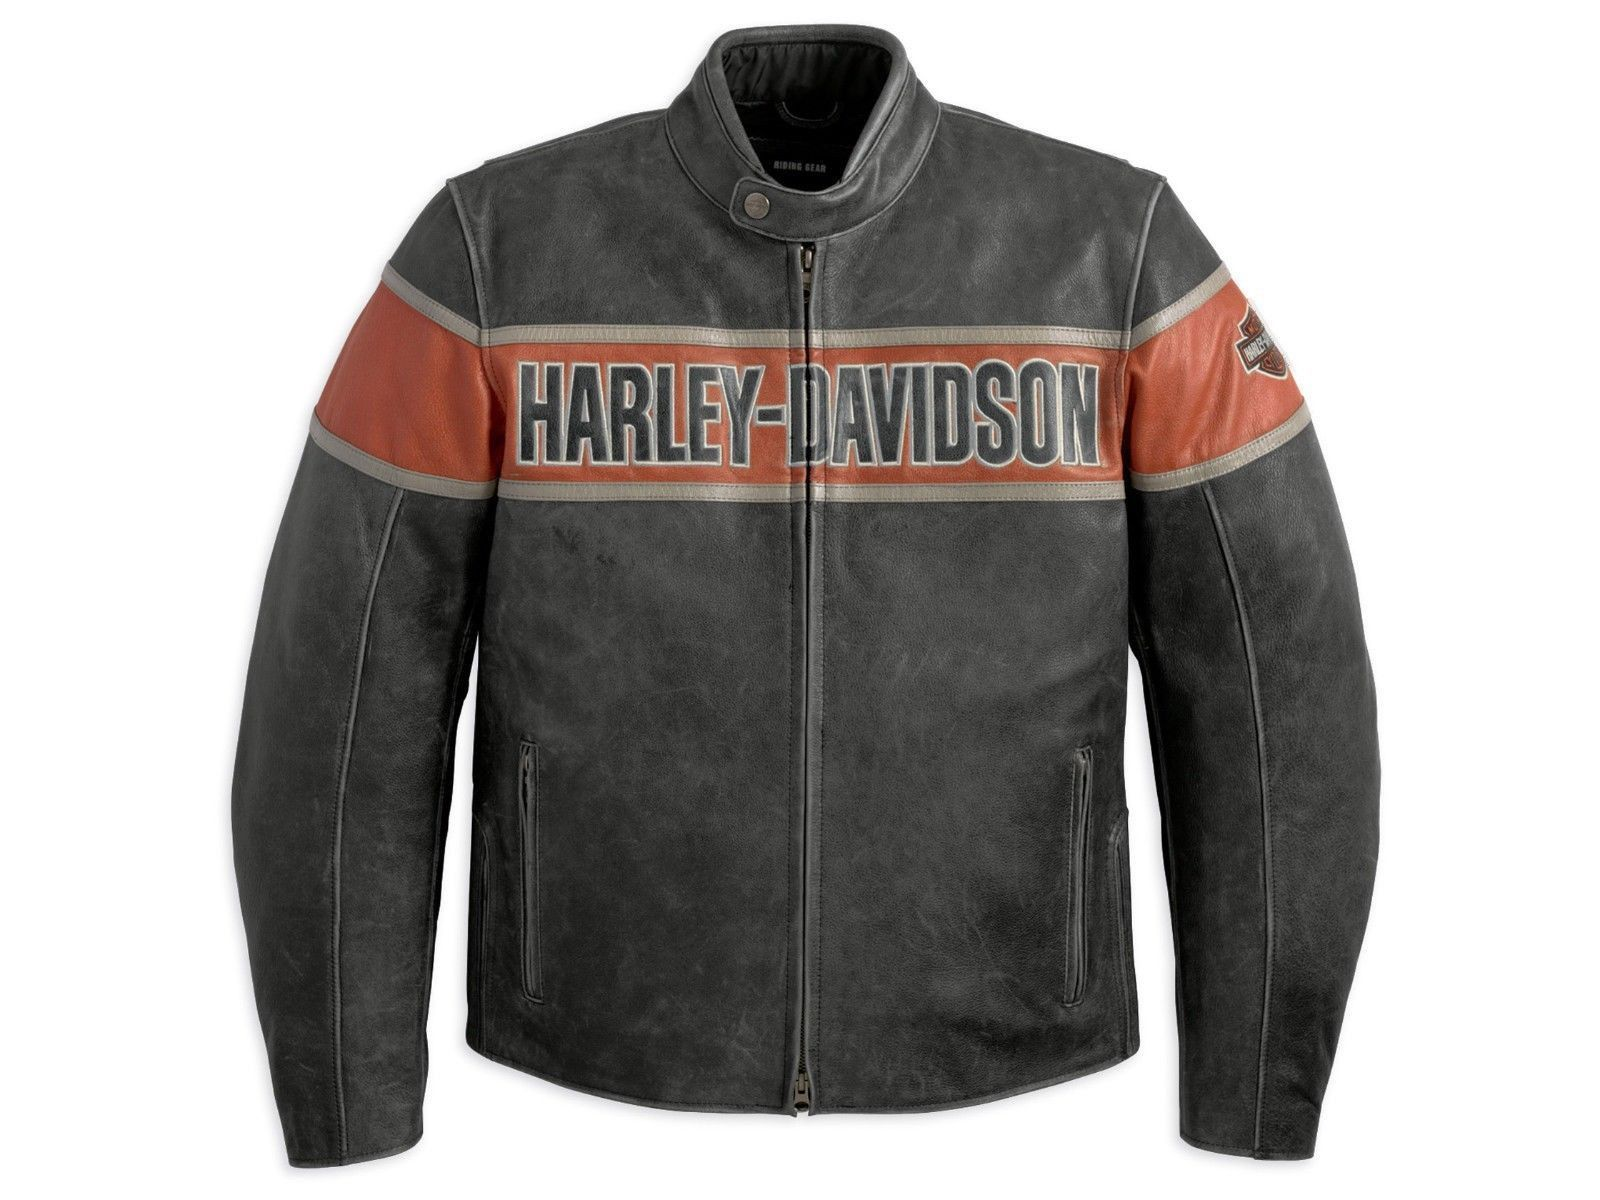 Harley Davidson Men's Victory Lane Black Leather Jacket S